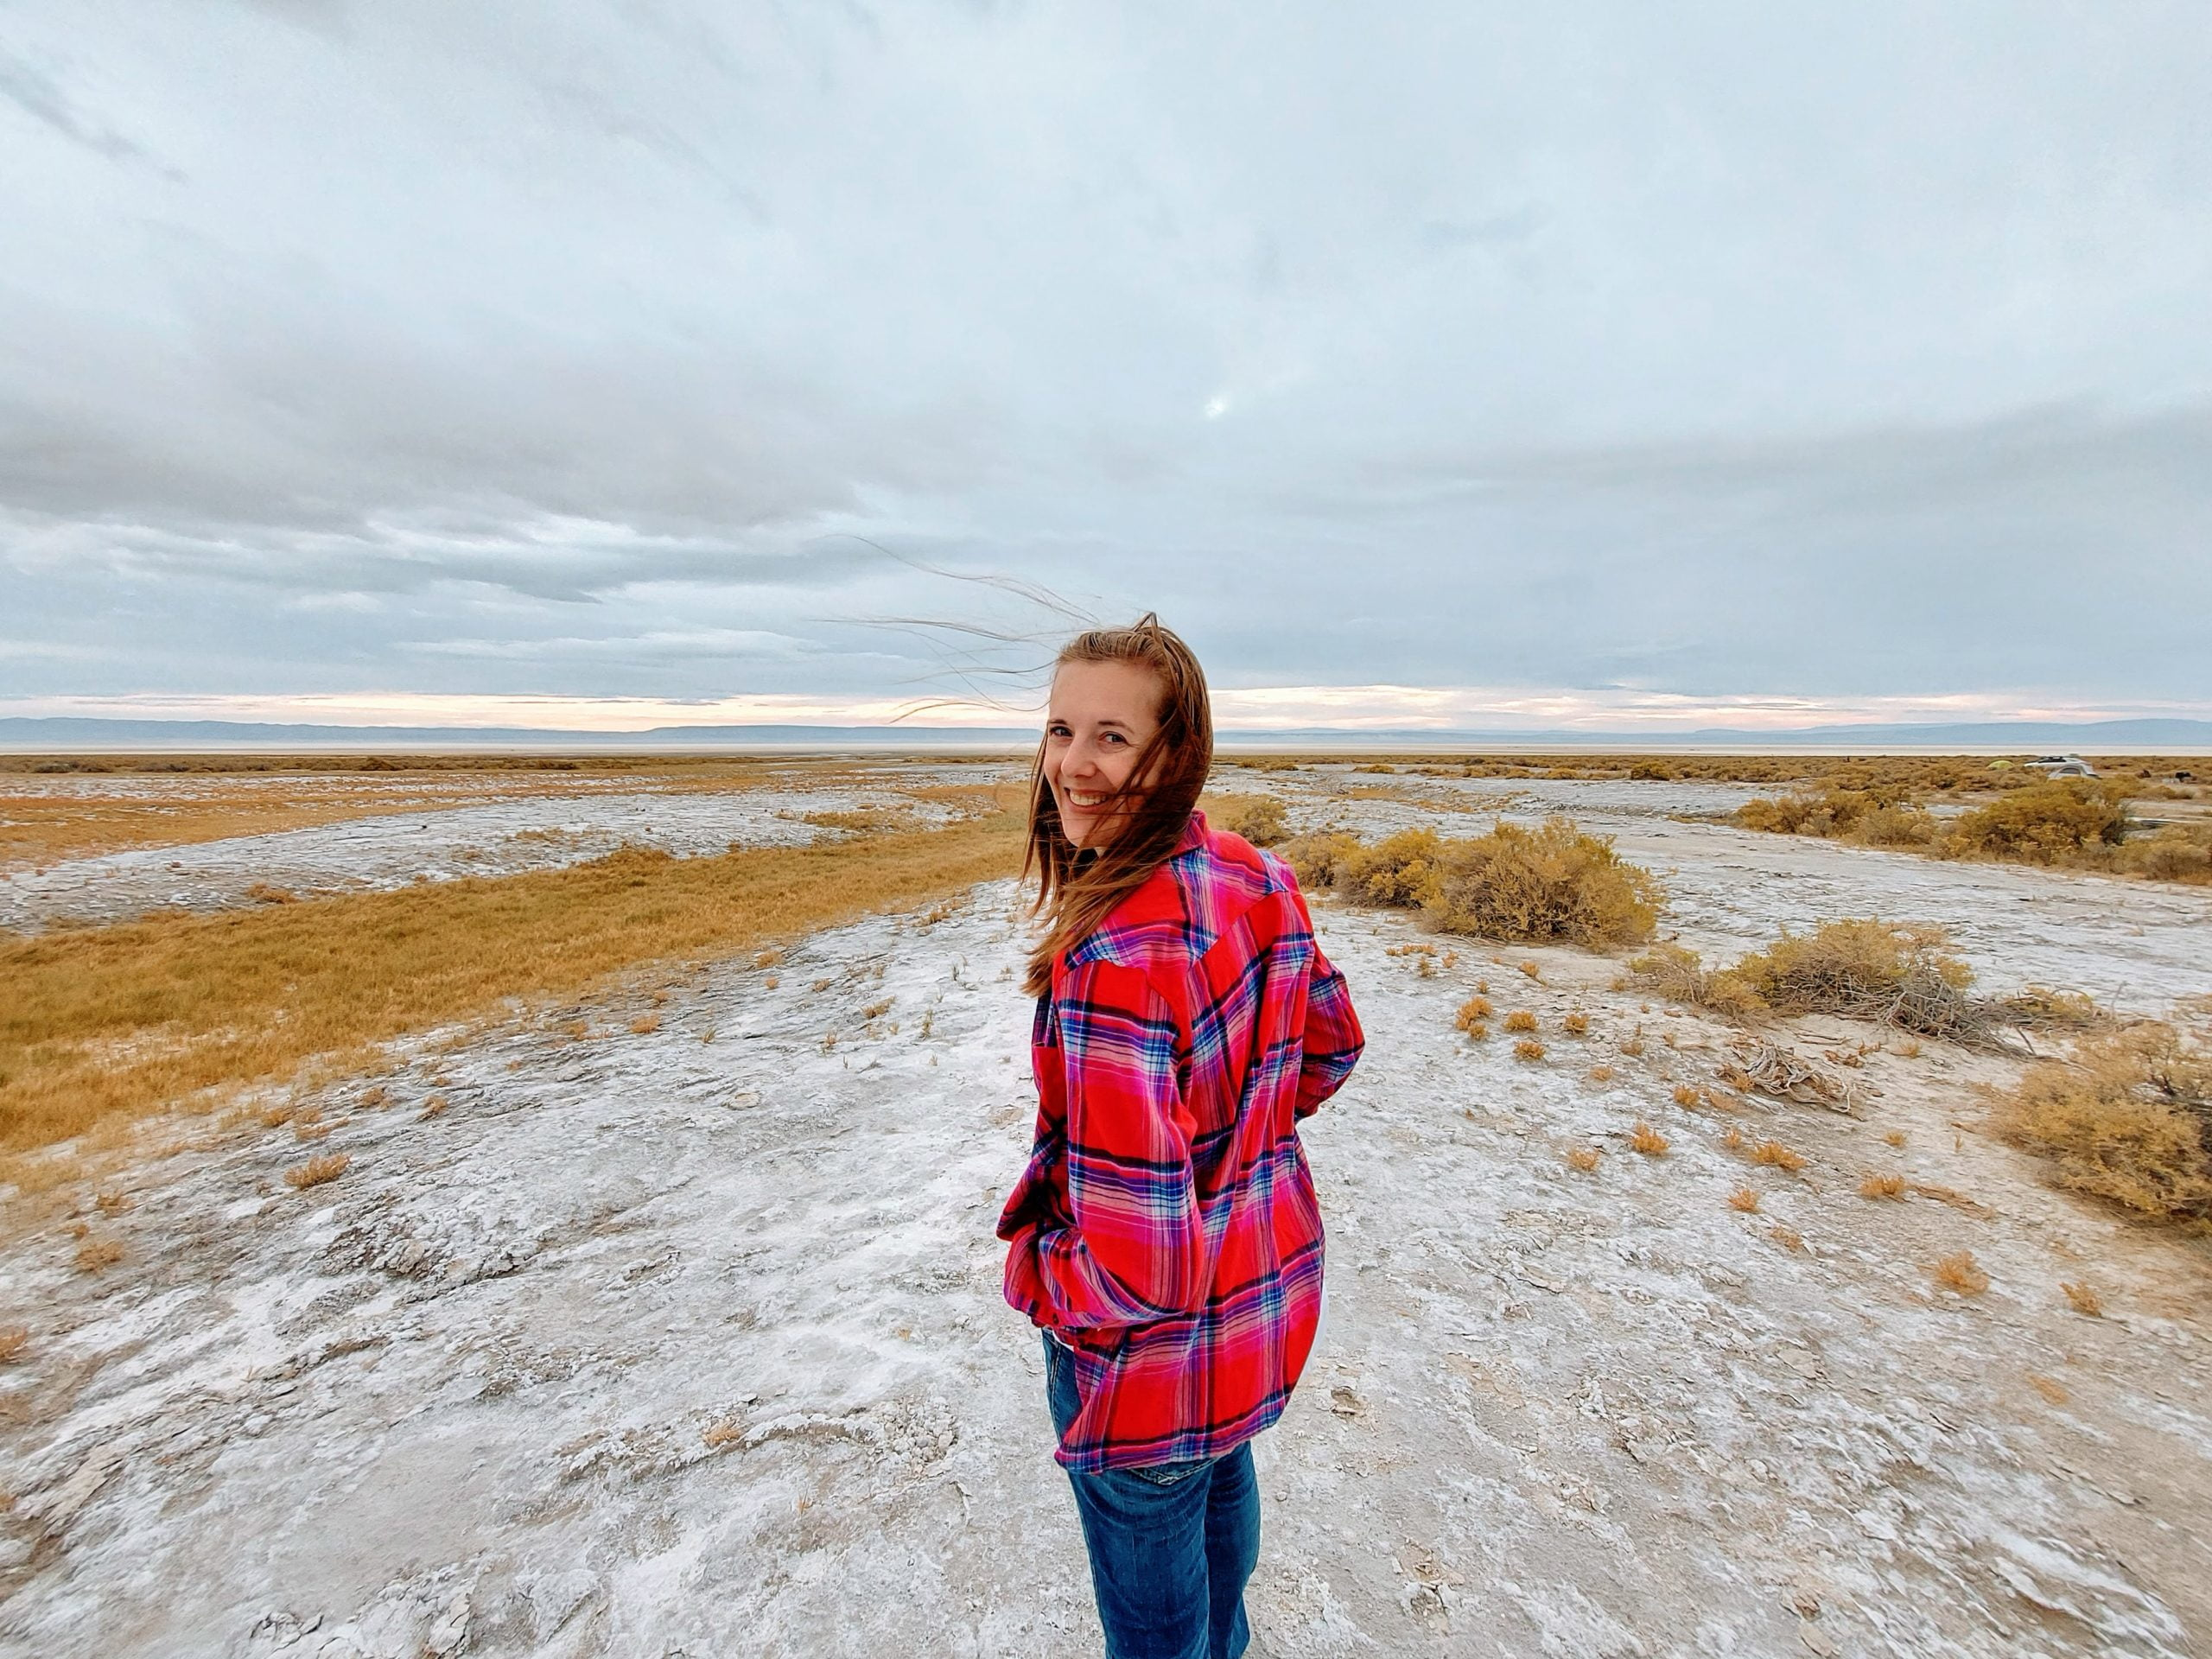 woman standing on white mineral rich soil in the desert